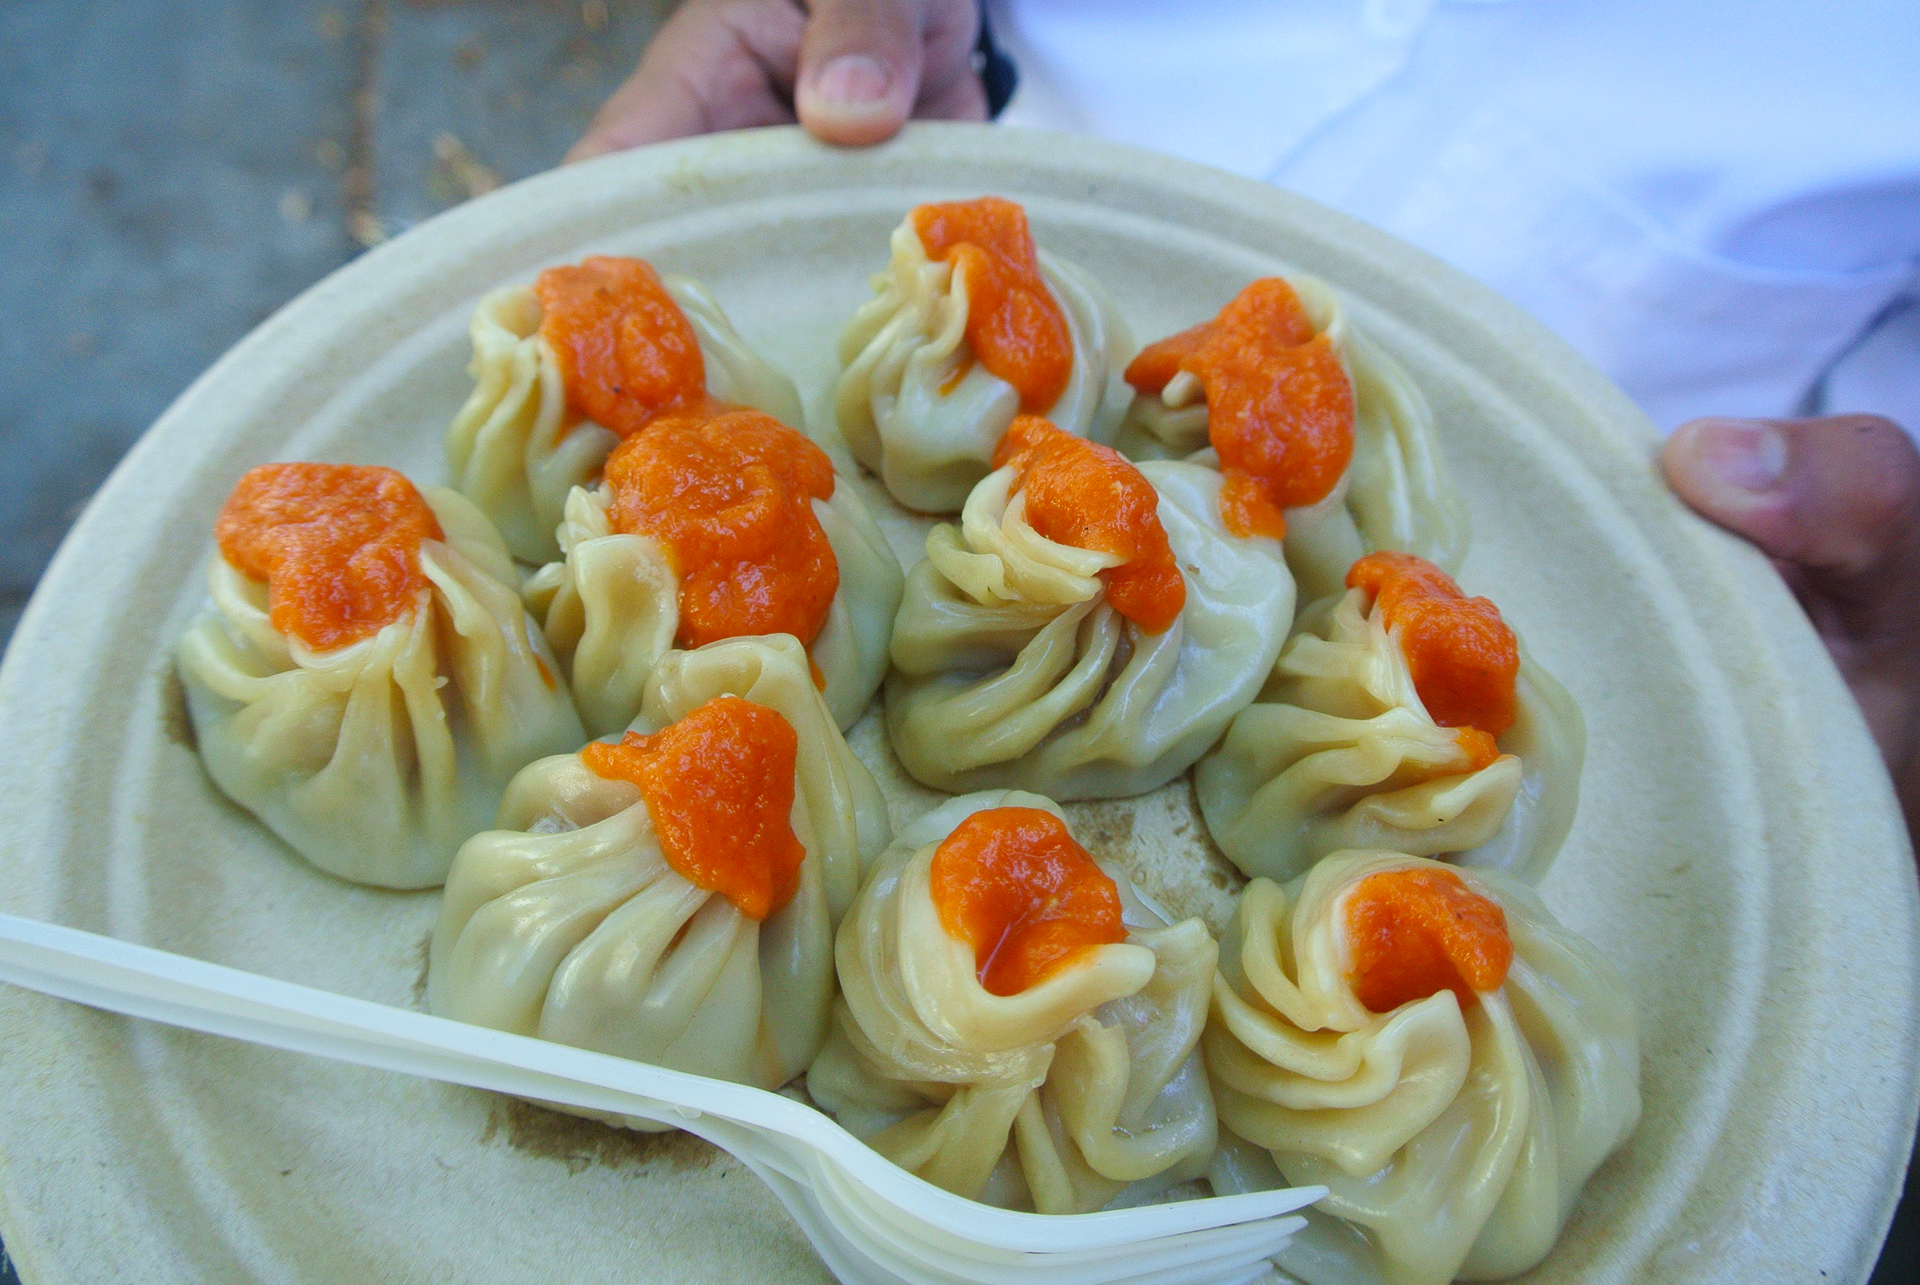 Momos from Bini's Kitchen, topped with tomato sauce